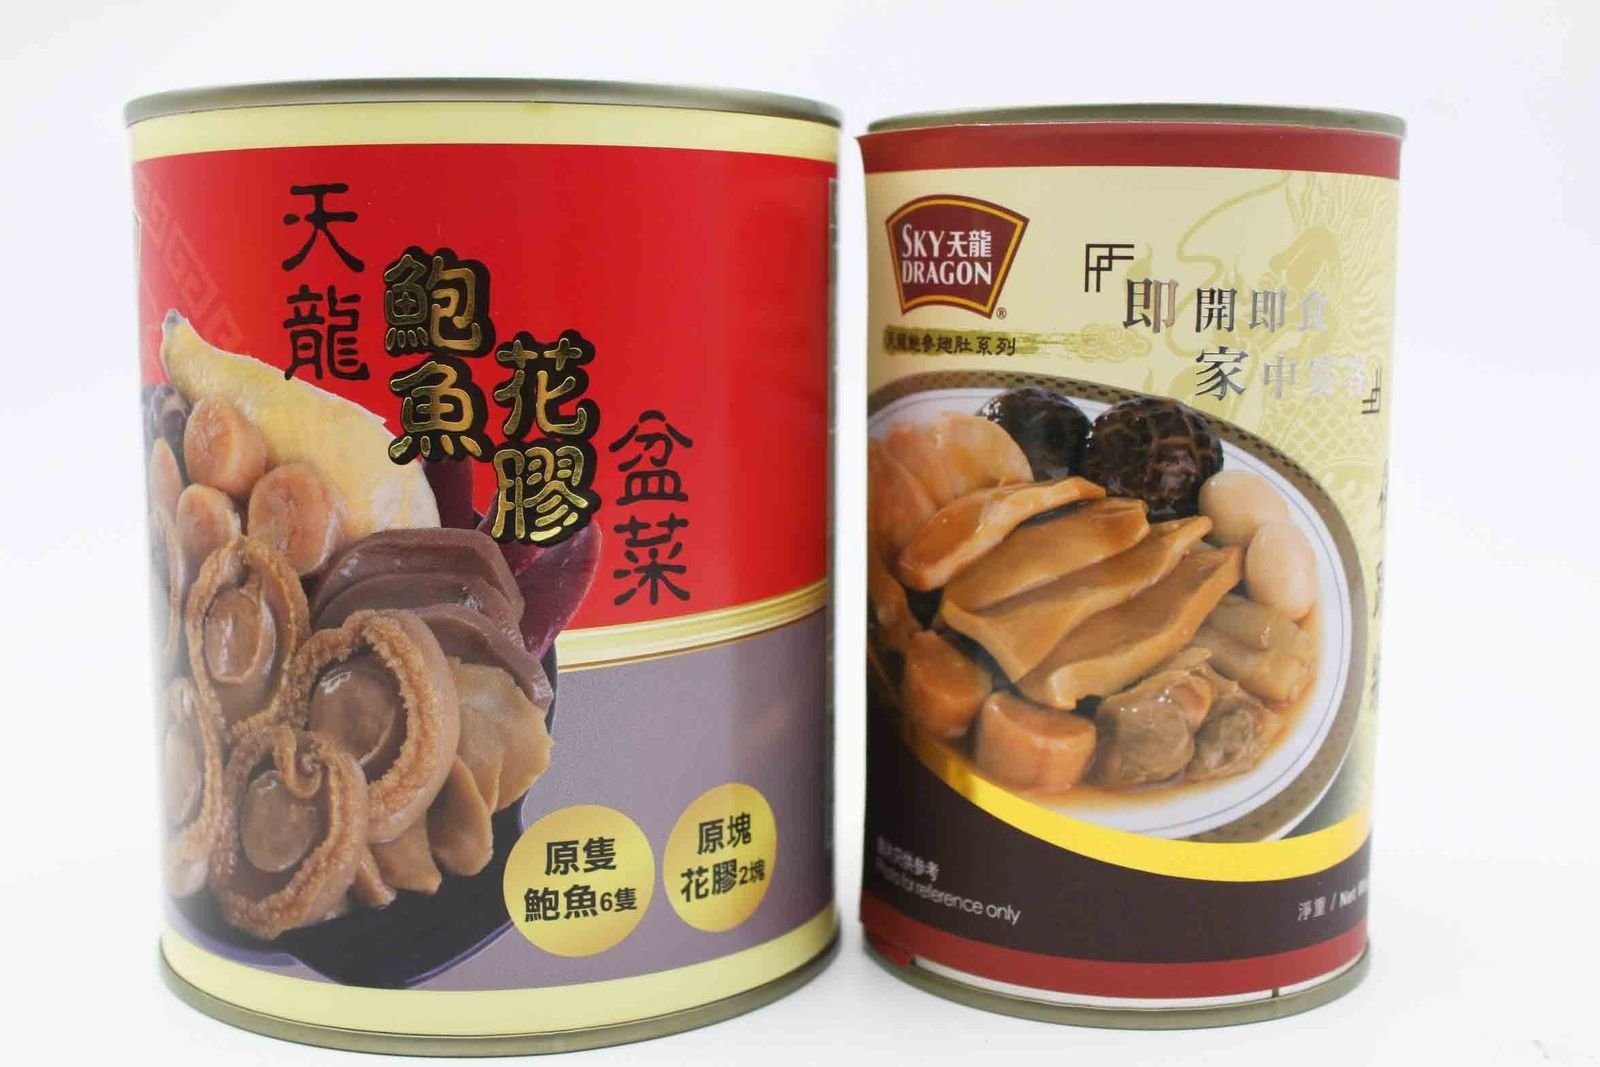 Set-5 Canned Bowl Feast (1 cans) x Canned Fotiaoqiang (1 cans) Free Airmail